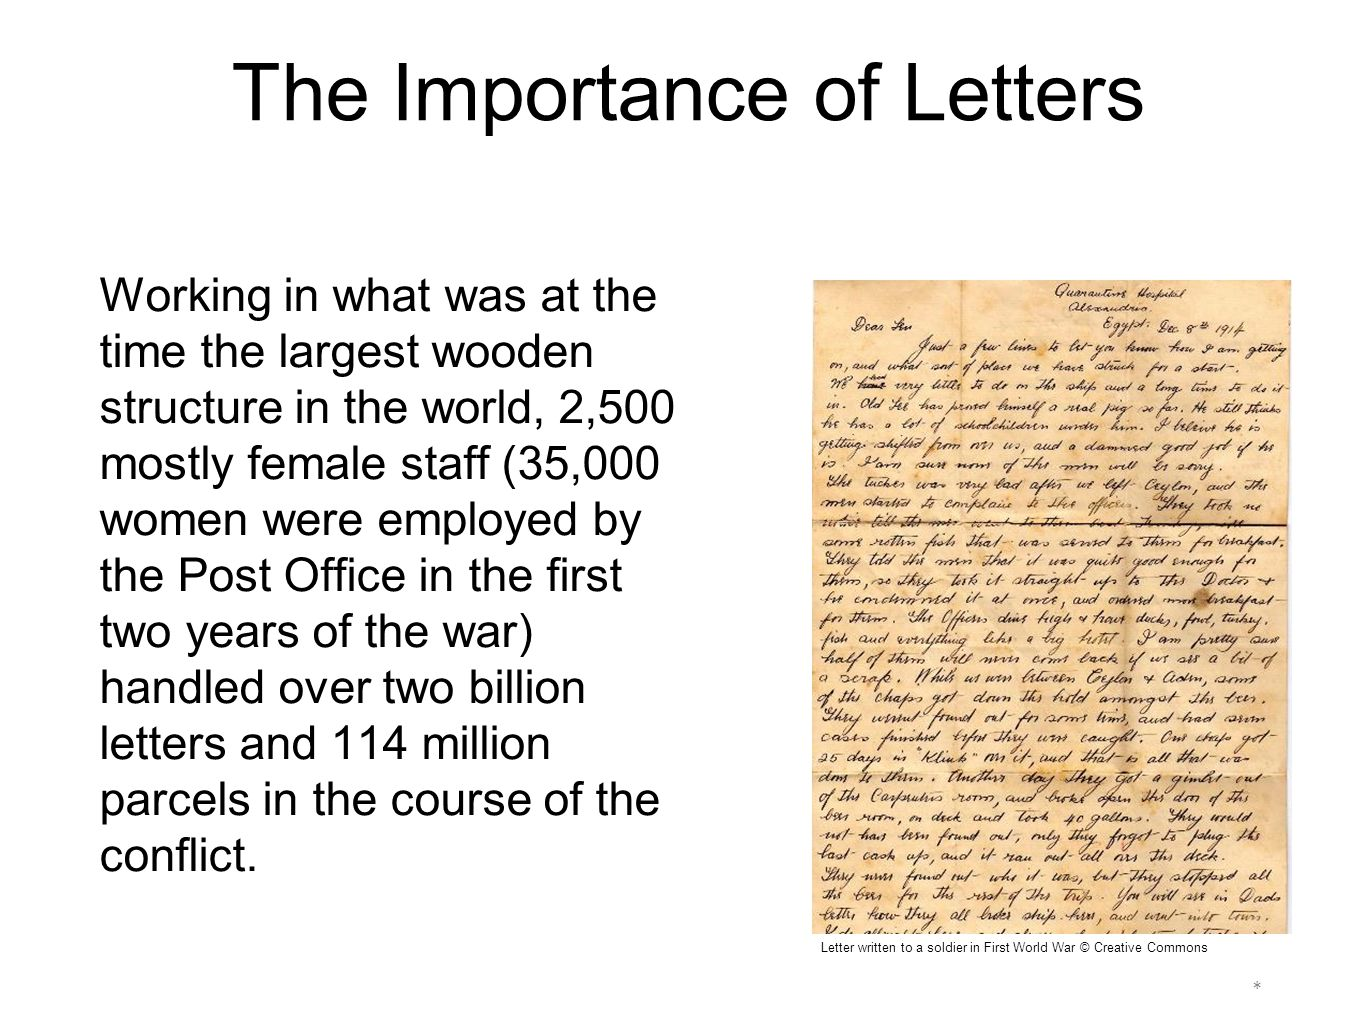 * Letter written to a soldier in First World War © Creative Commons The Importance of Letters Working in what was at the time the largest wooden structure in the world, 2,500 mostly female staff (35,000 women were employed by the Post Office in the first two years of the war) handled over two billion letters and 114 million parcels in the course of the conflict.